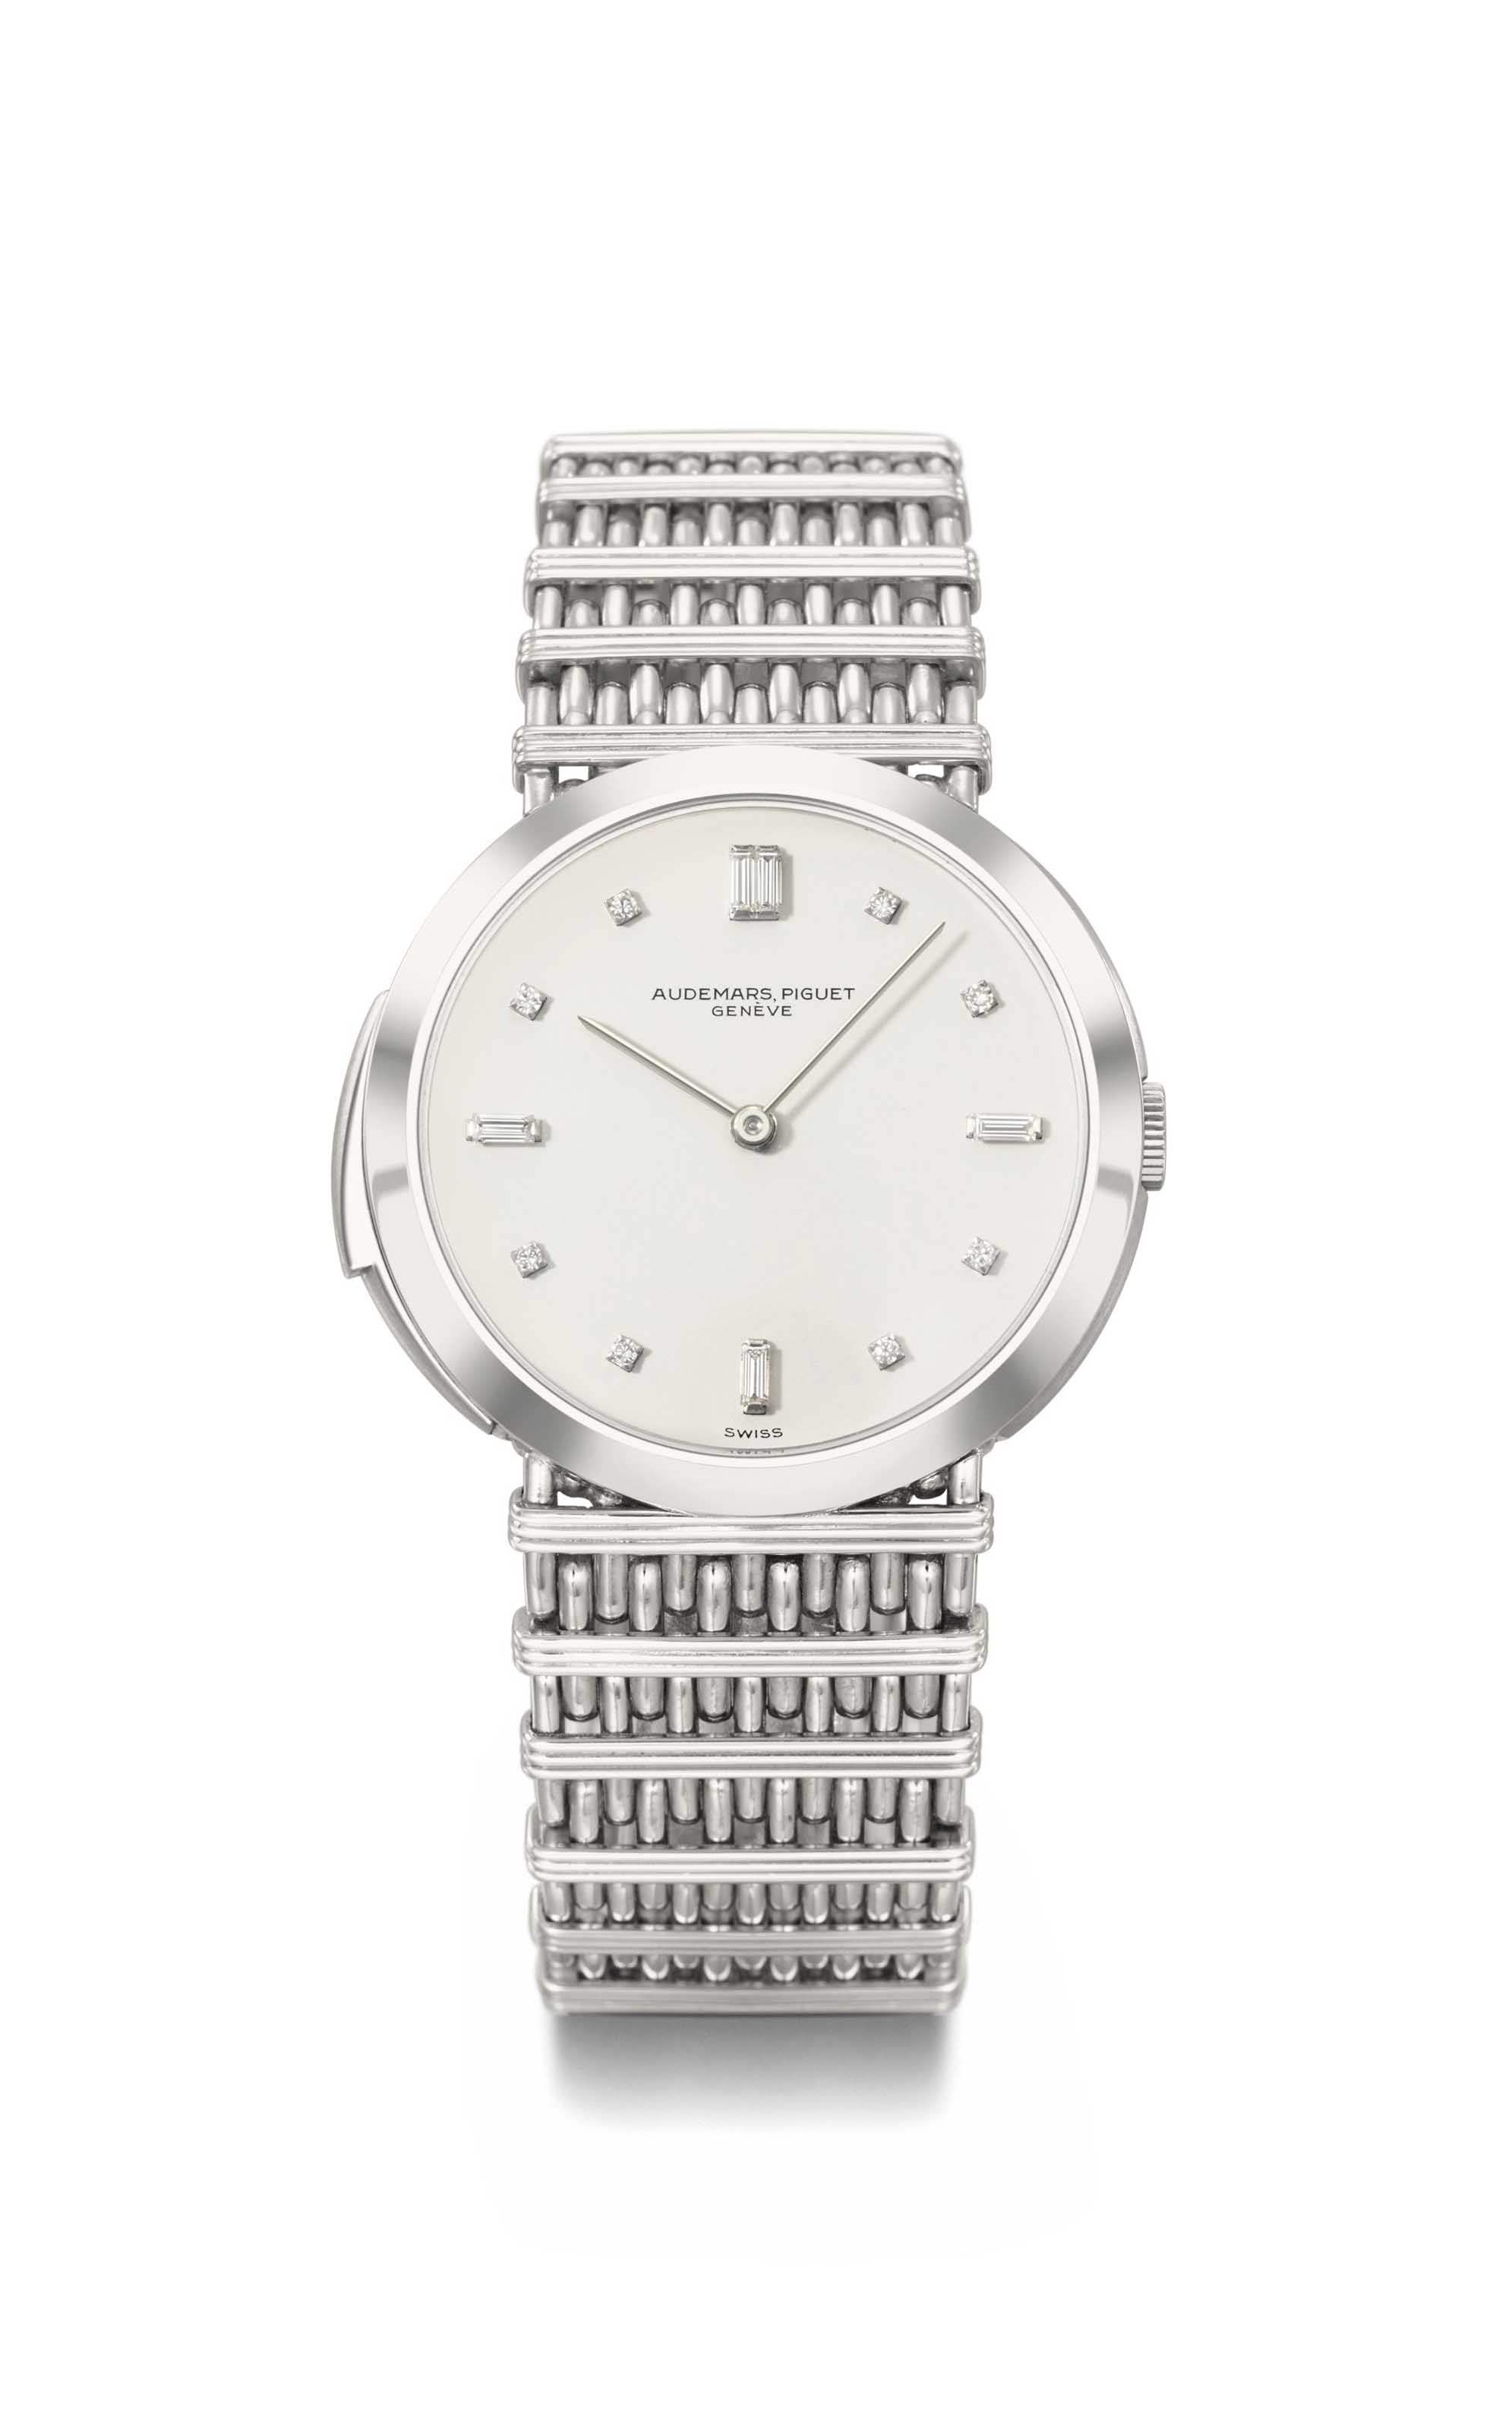 Audemars Piguet. A unique, extremely fine, highly important and previously unknown platinum and diamond-set minute repeating wristwatch with bracelet